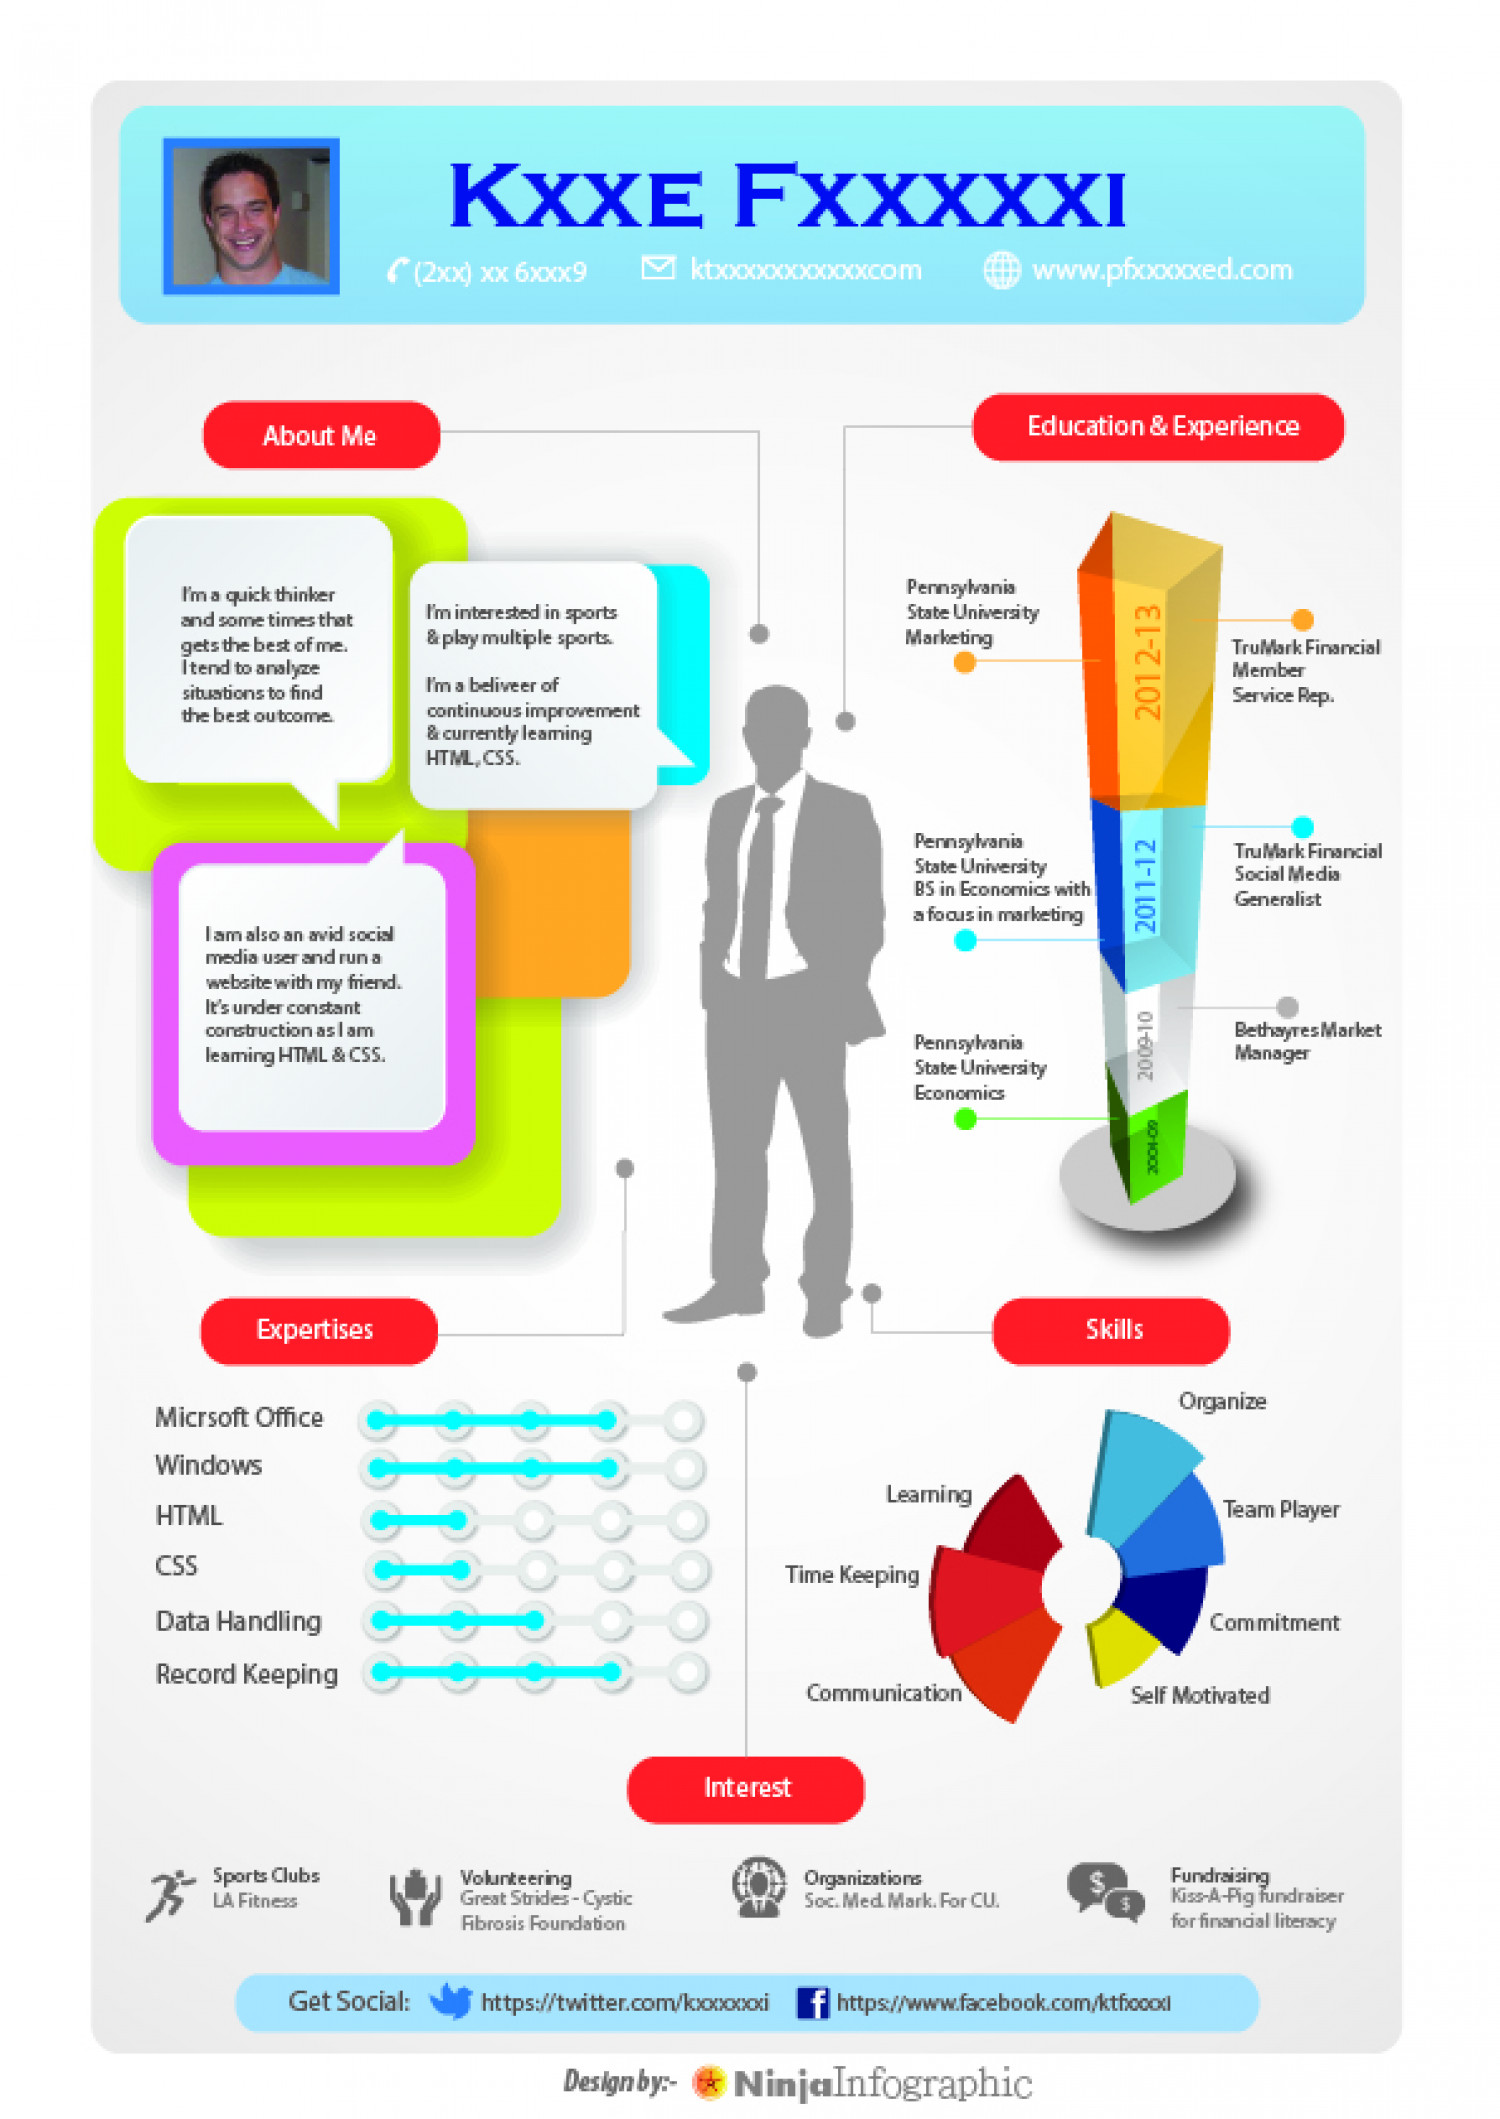 Resume Infographic the l progression Infographic Resume Infographic